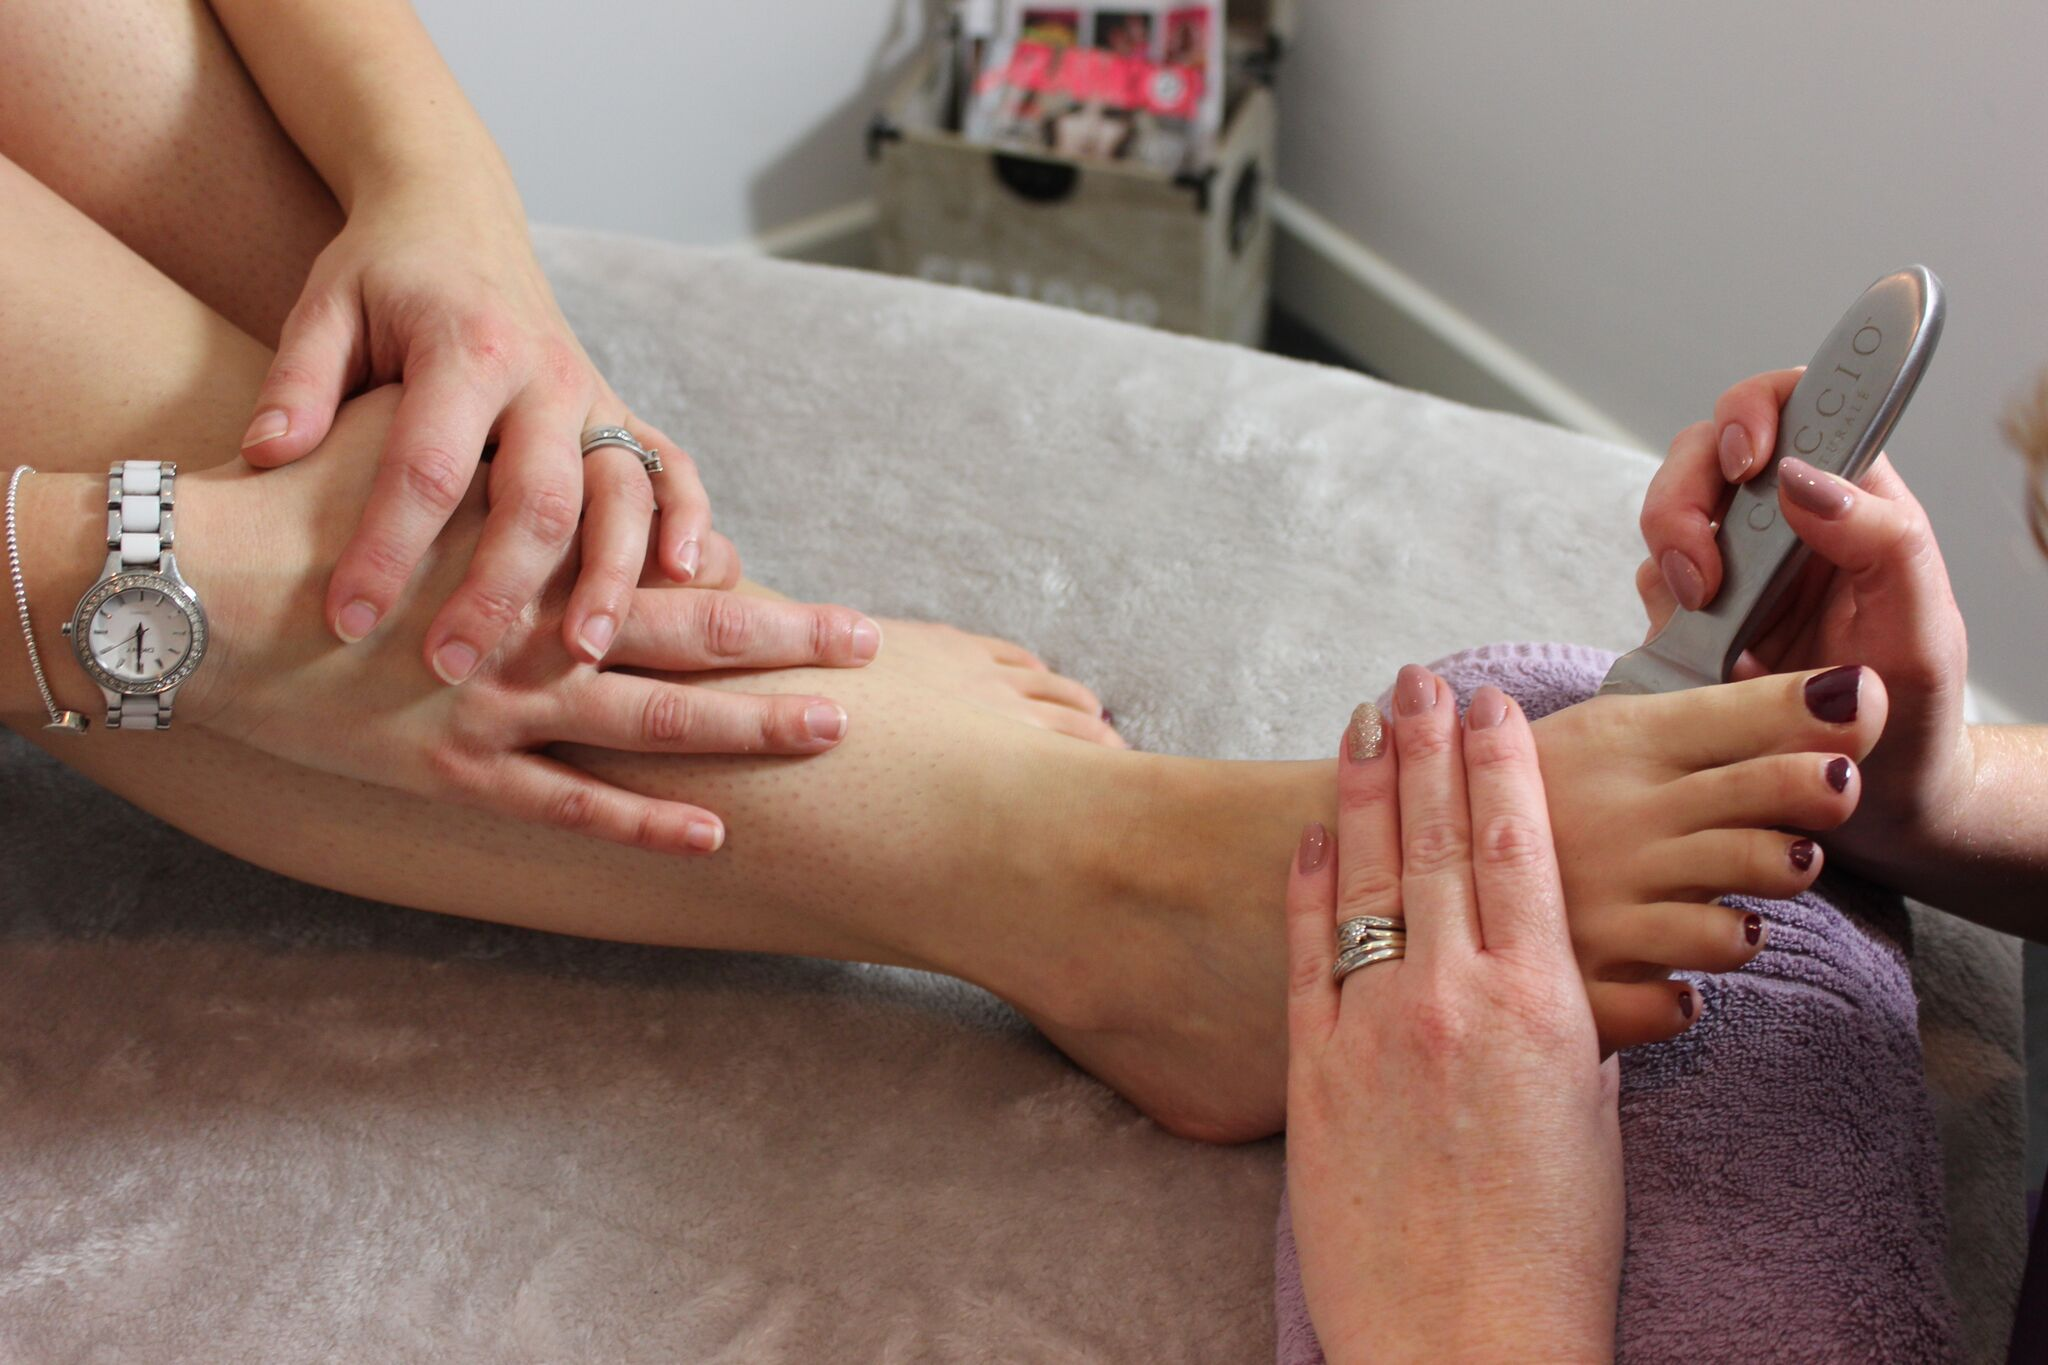 Close up shot of a pedicure being undertaken